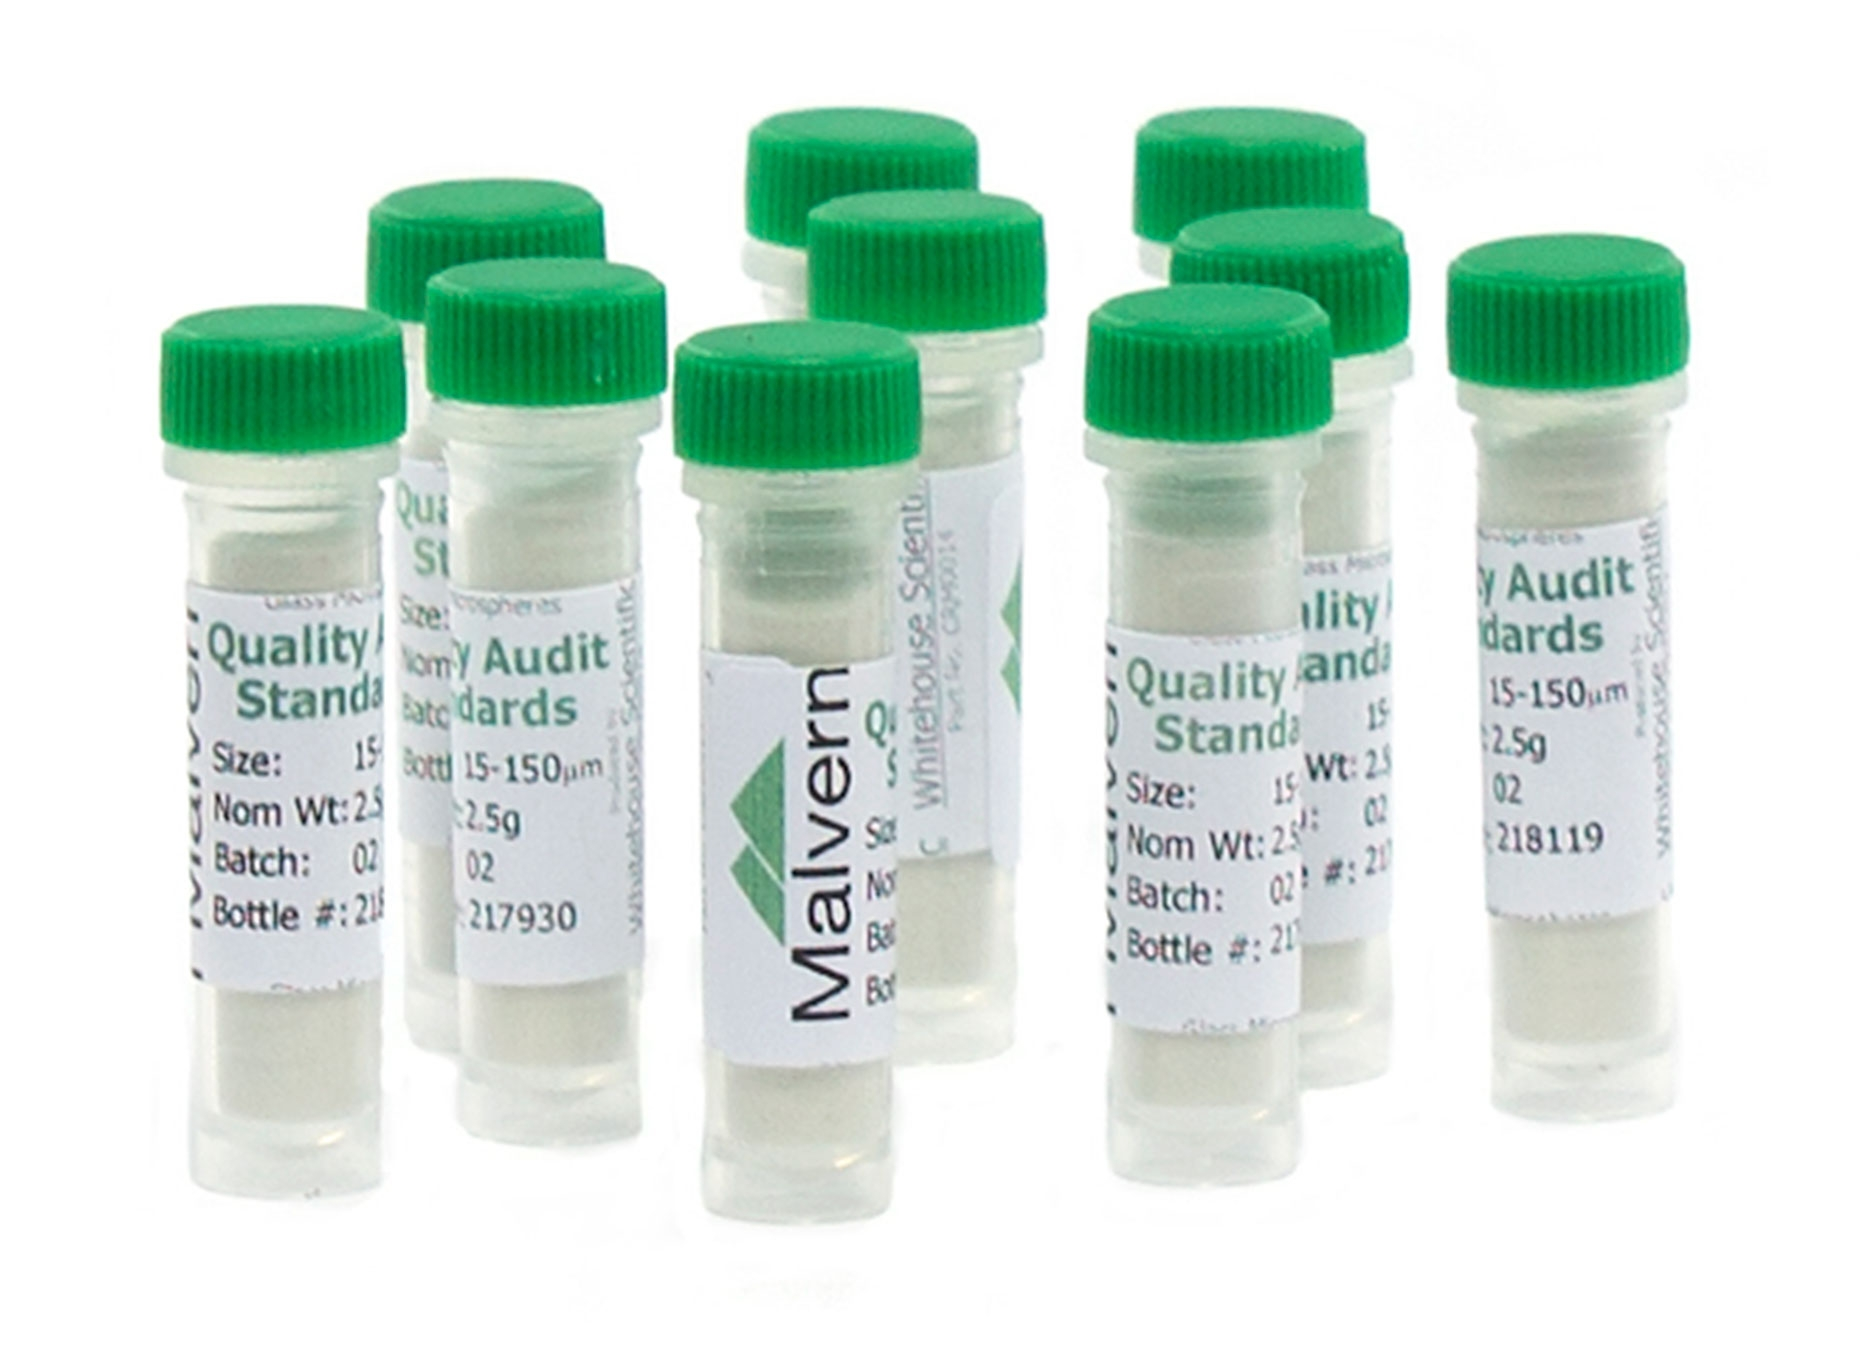 Pack of ten 2.5g single-shot Malvern Quality Audit Standards by Malvern Panalytical thumbnail